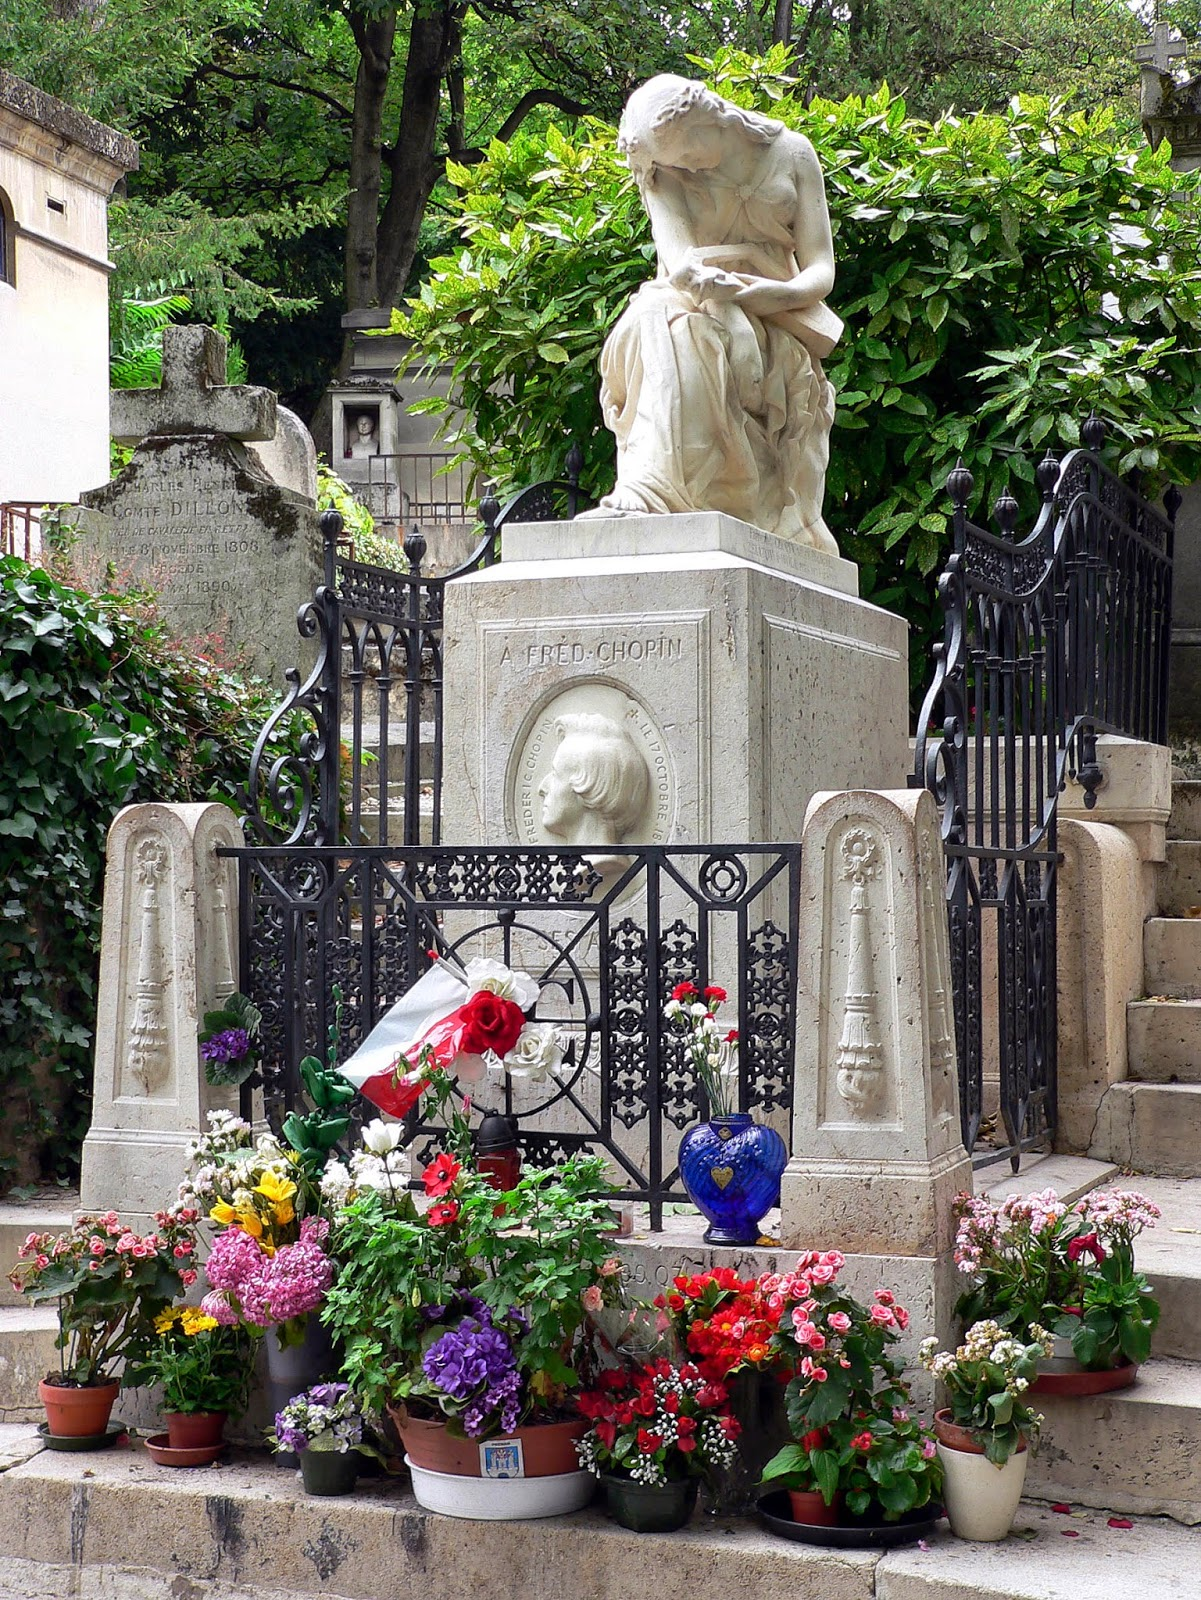 Frederic Chopin grave site at the Pere Lachaise Cemetary Paris, France